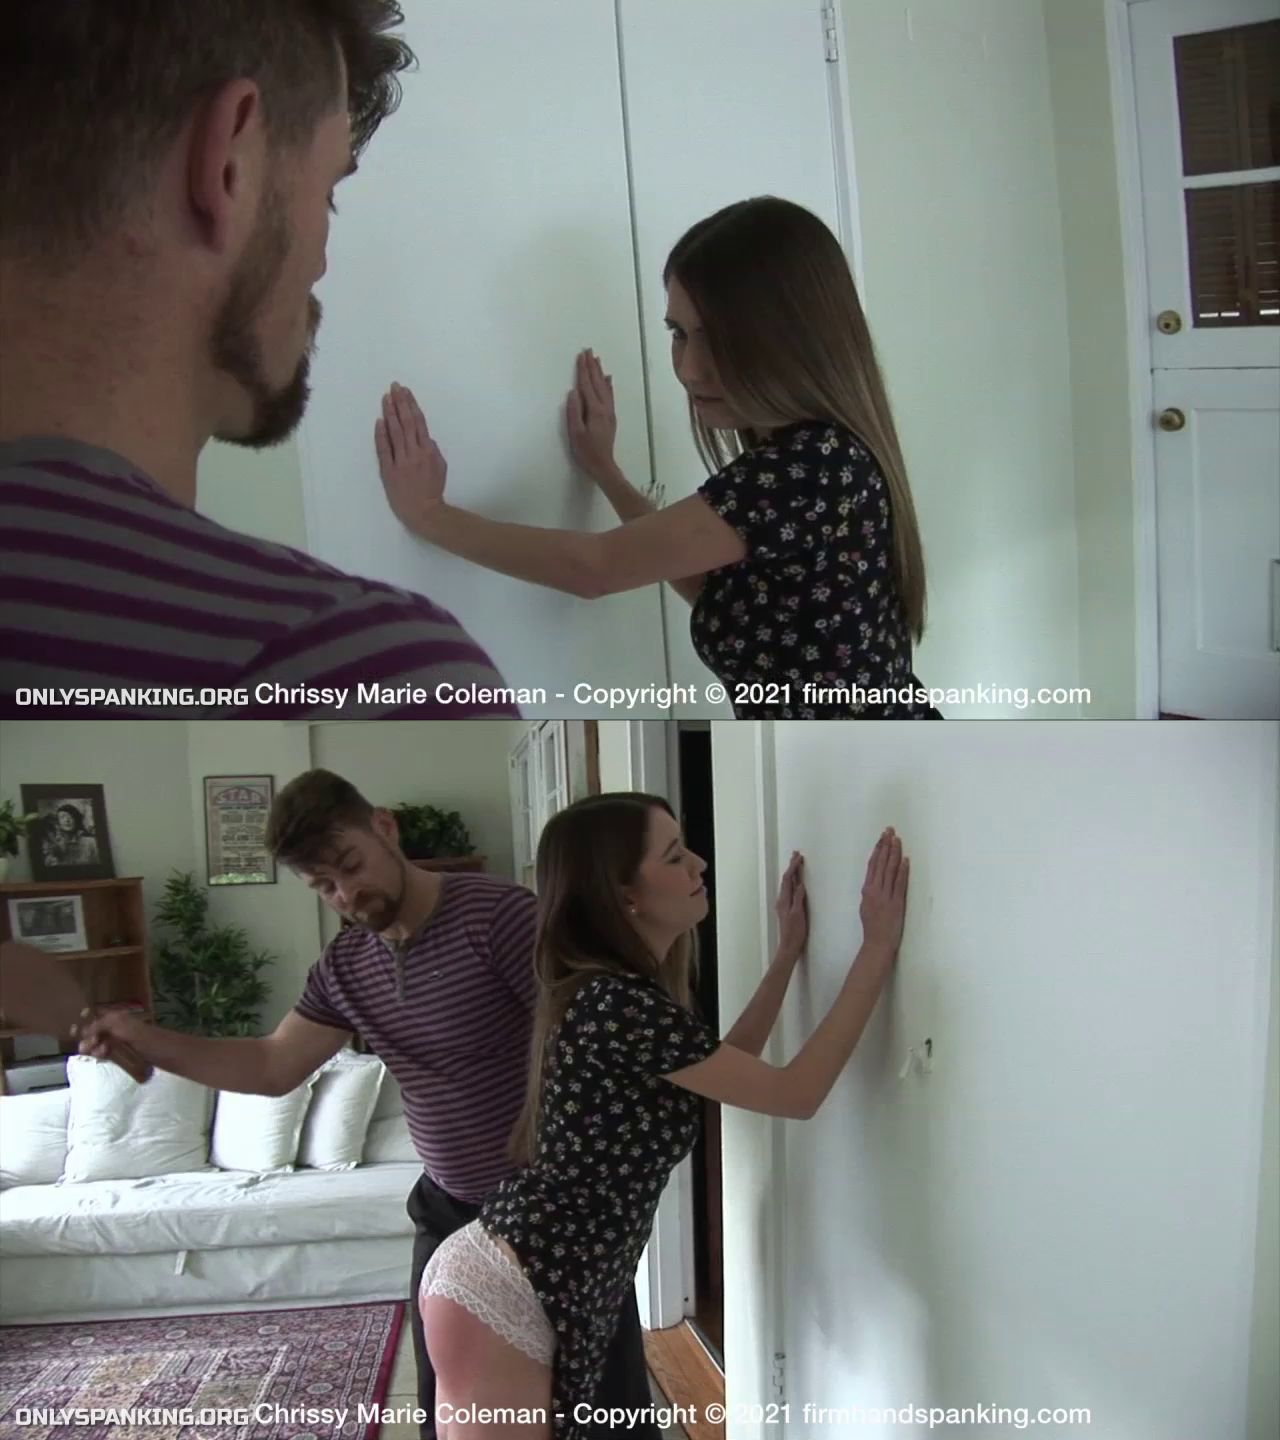 firmhandspanking – MP4/HD – Chrissy Marie – Country Girl (Release date: Aug. 03, 2021)